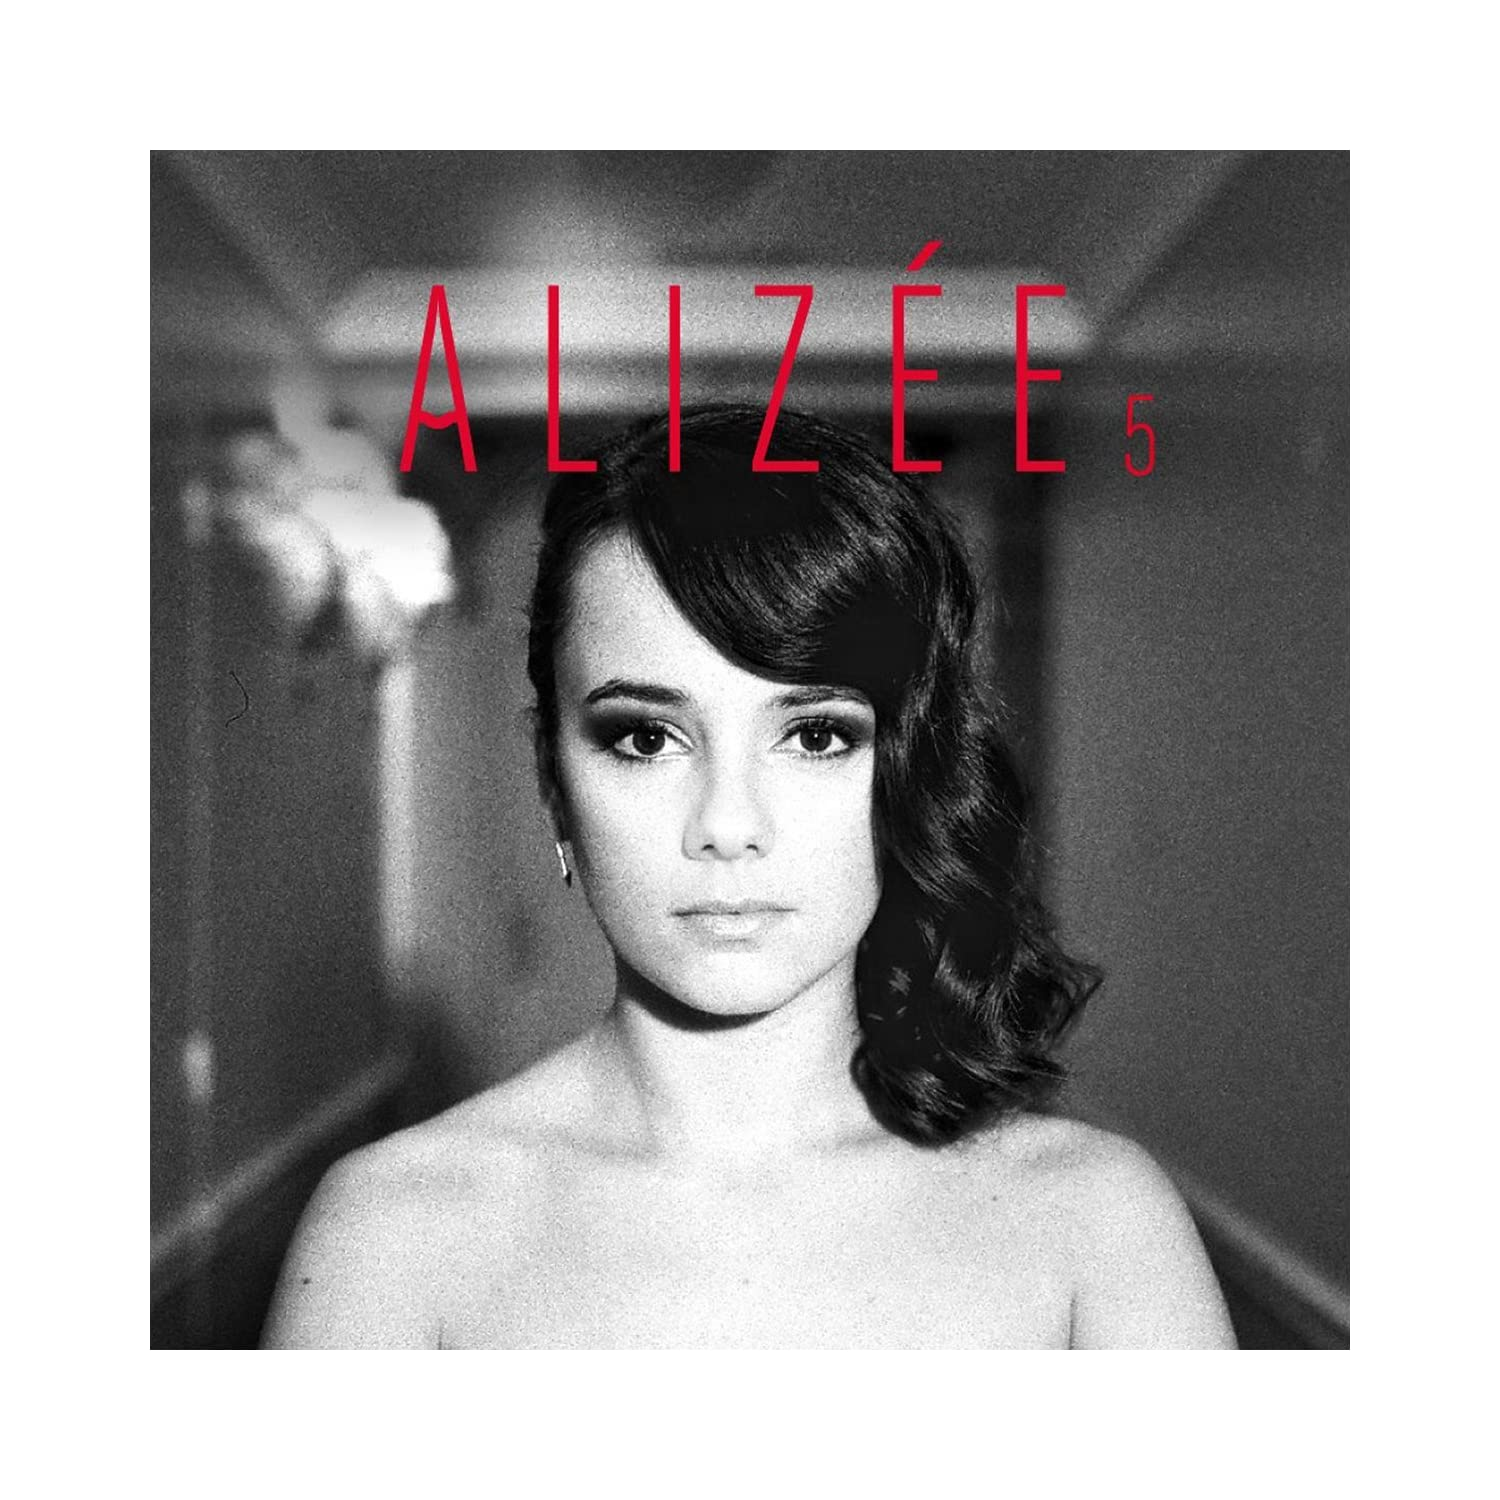 Alize 5 on Amazon.fr